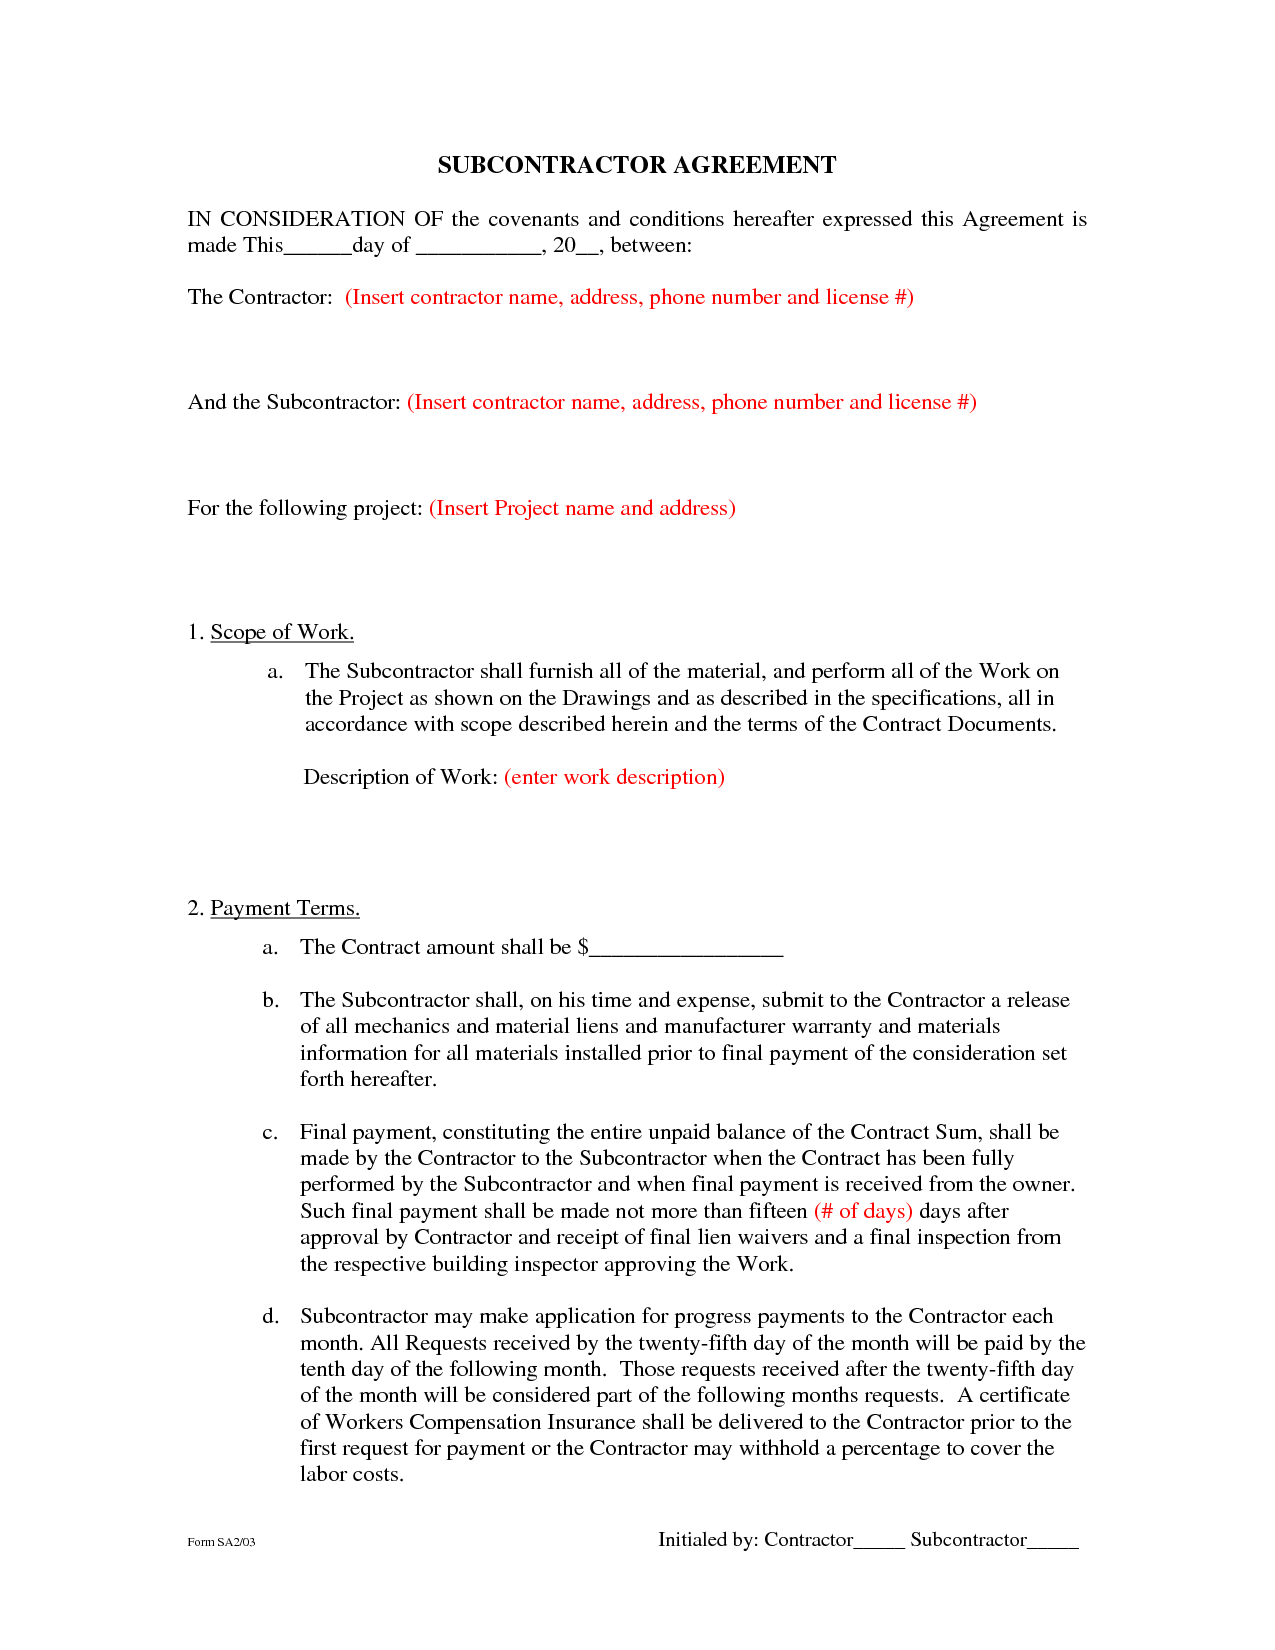 Subcontractor Agreement Forms by BeunaventuraLongjas – Subcontractor Agreement Template